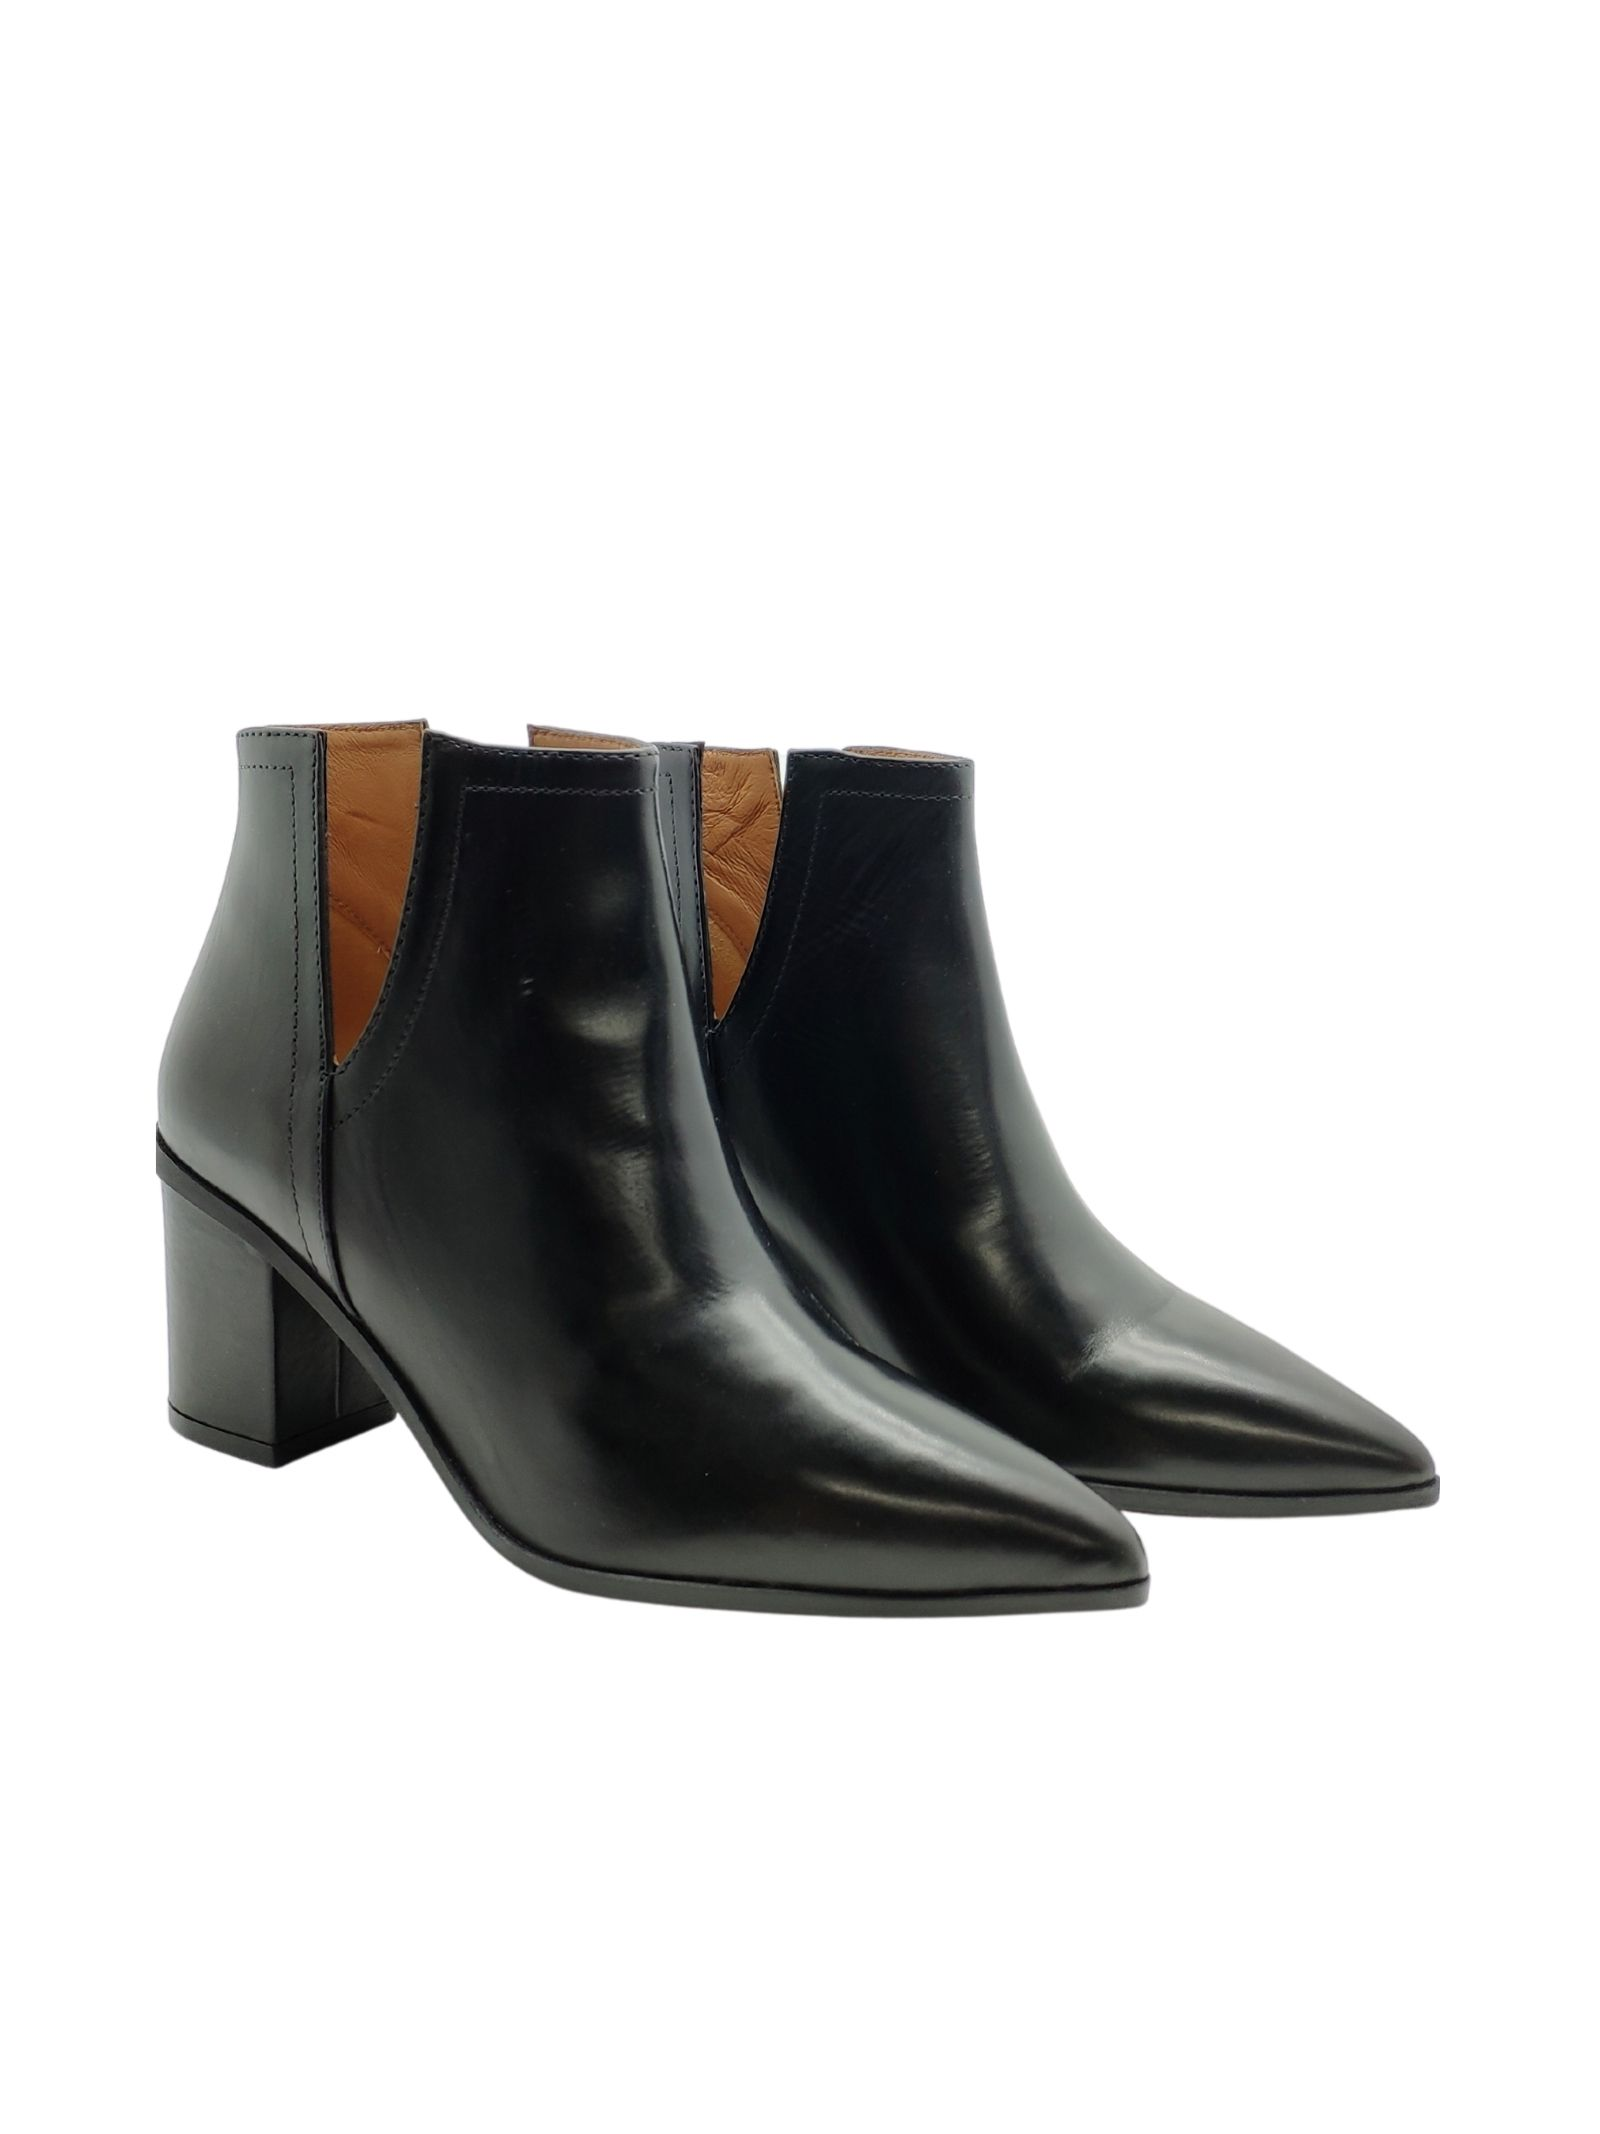 Women's Ankle Boots Bruno Premi | Ankle Boots | BA4401XNERO